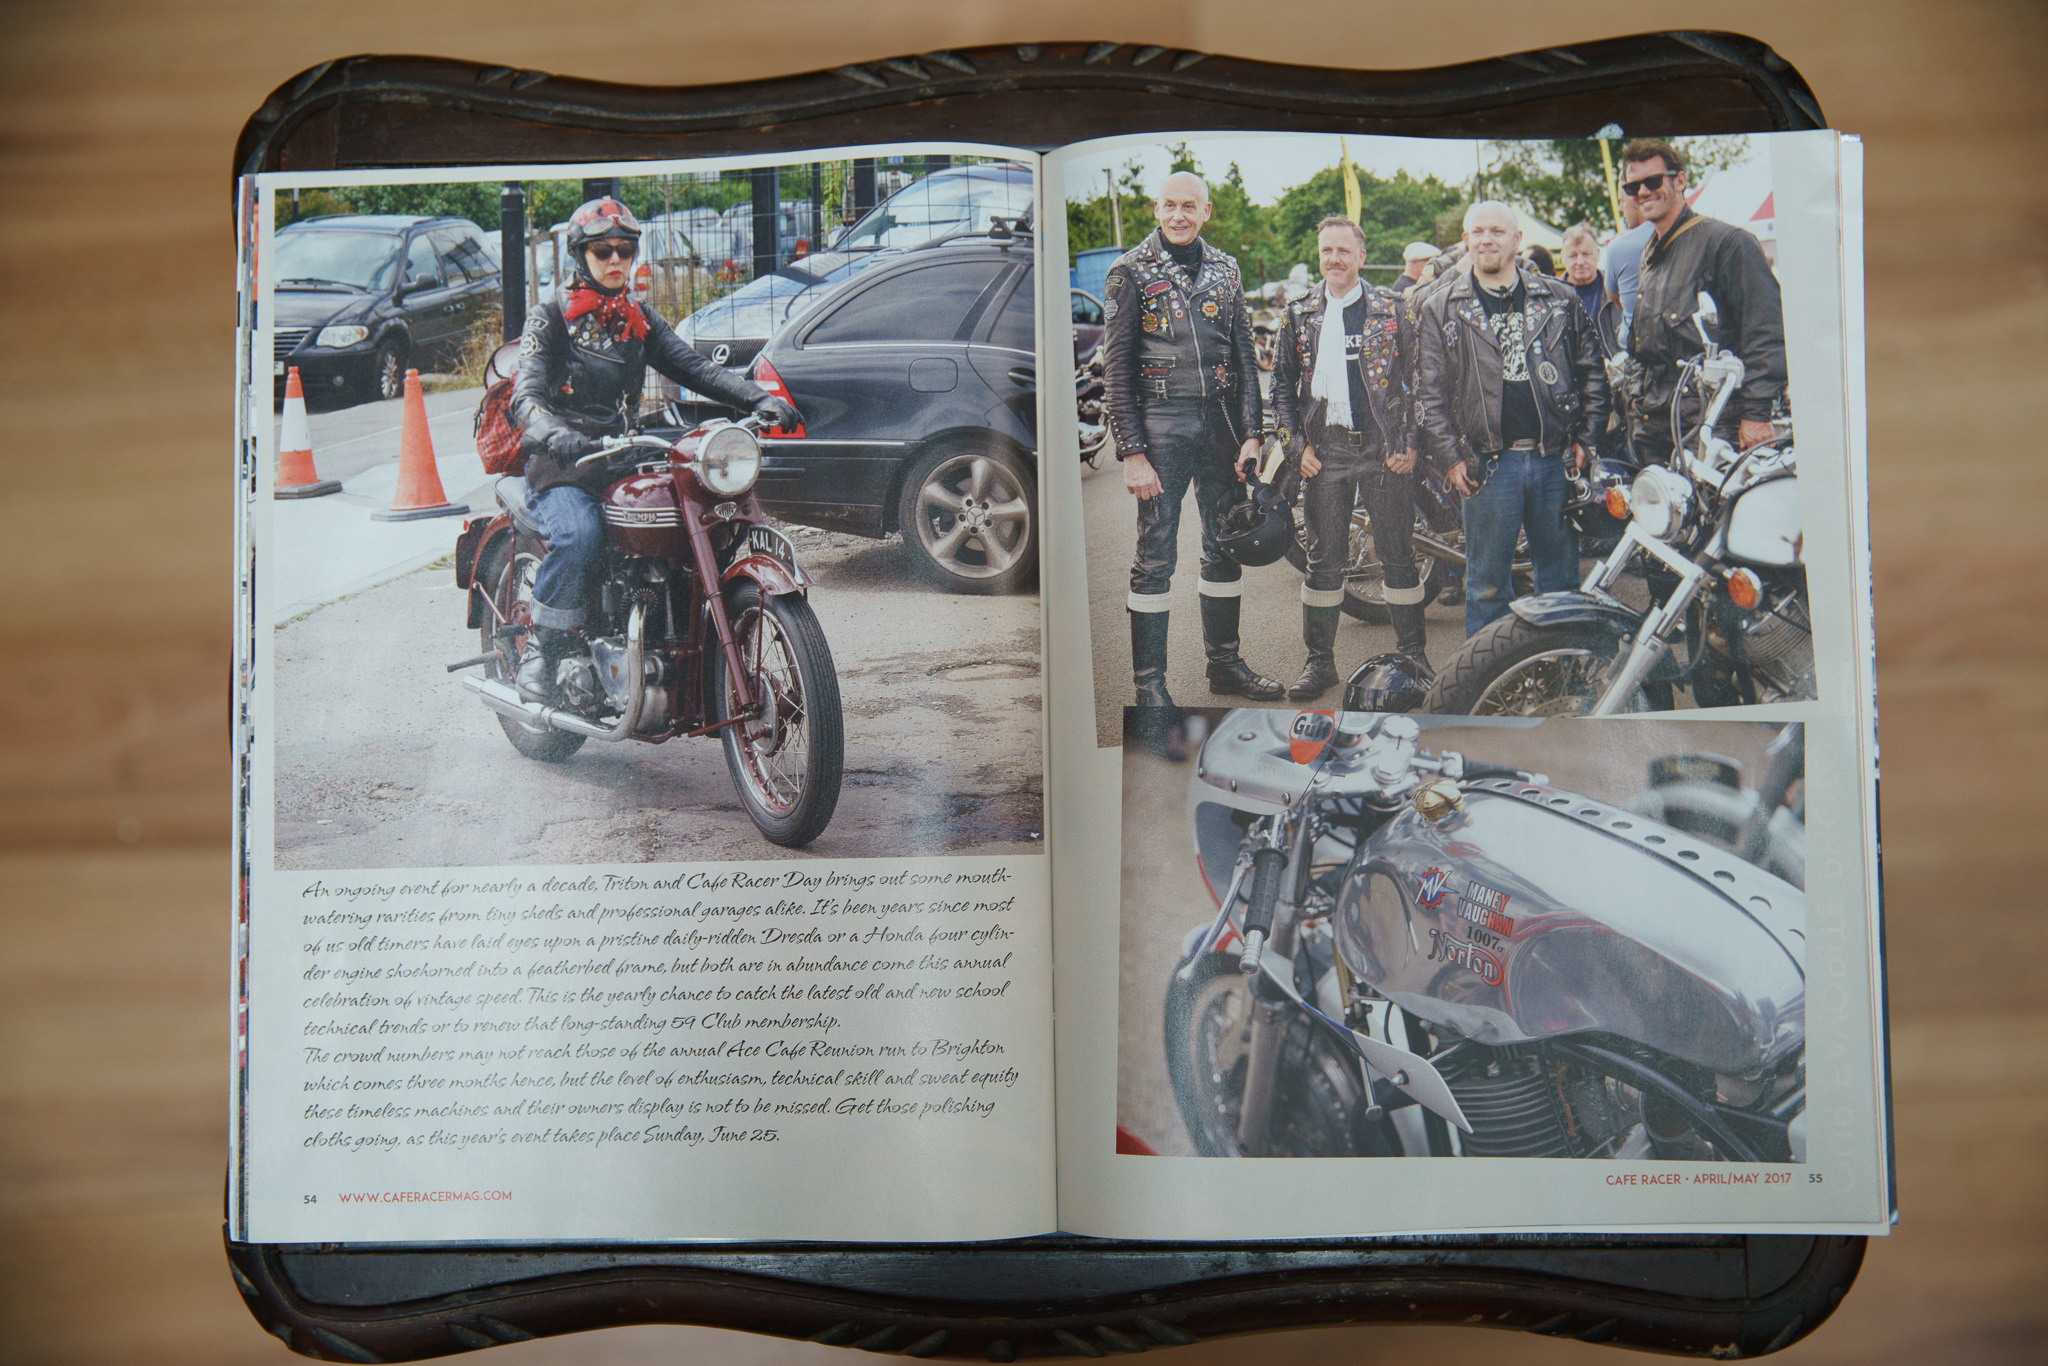 My photos published in Cafe Racer Magazine USA